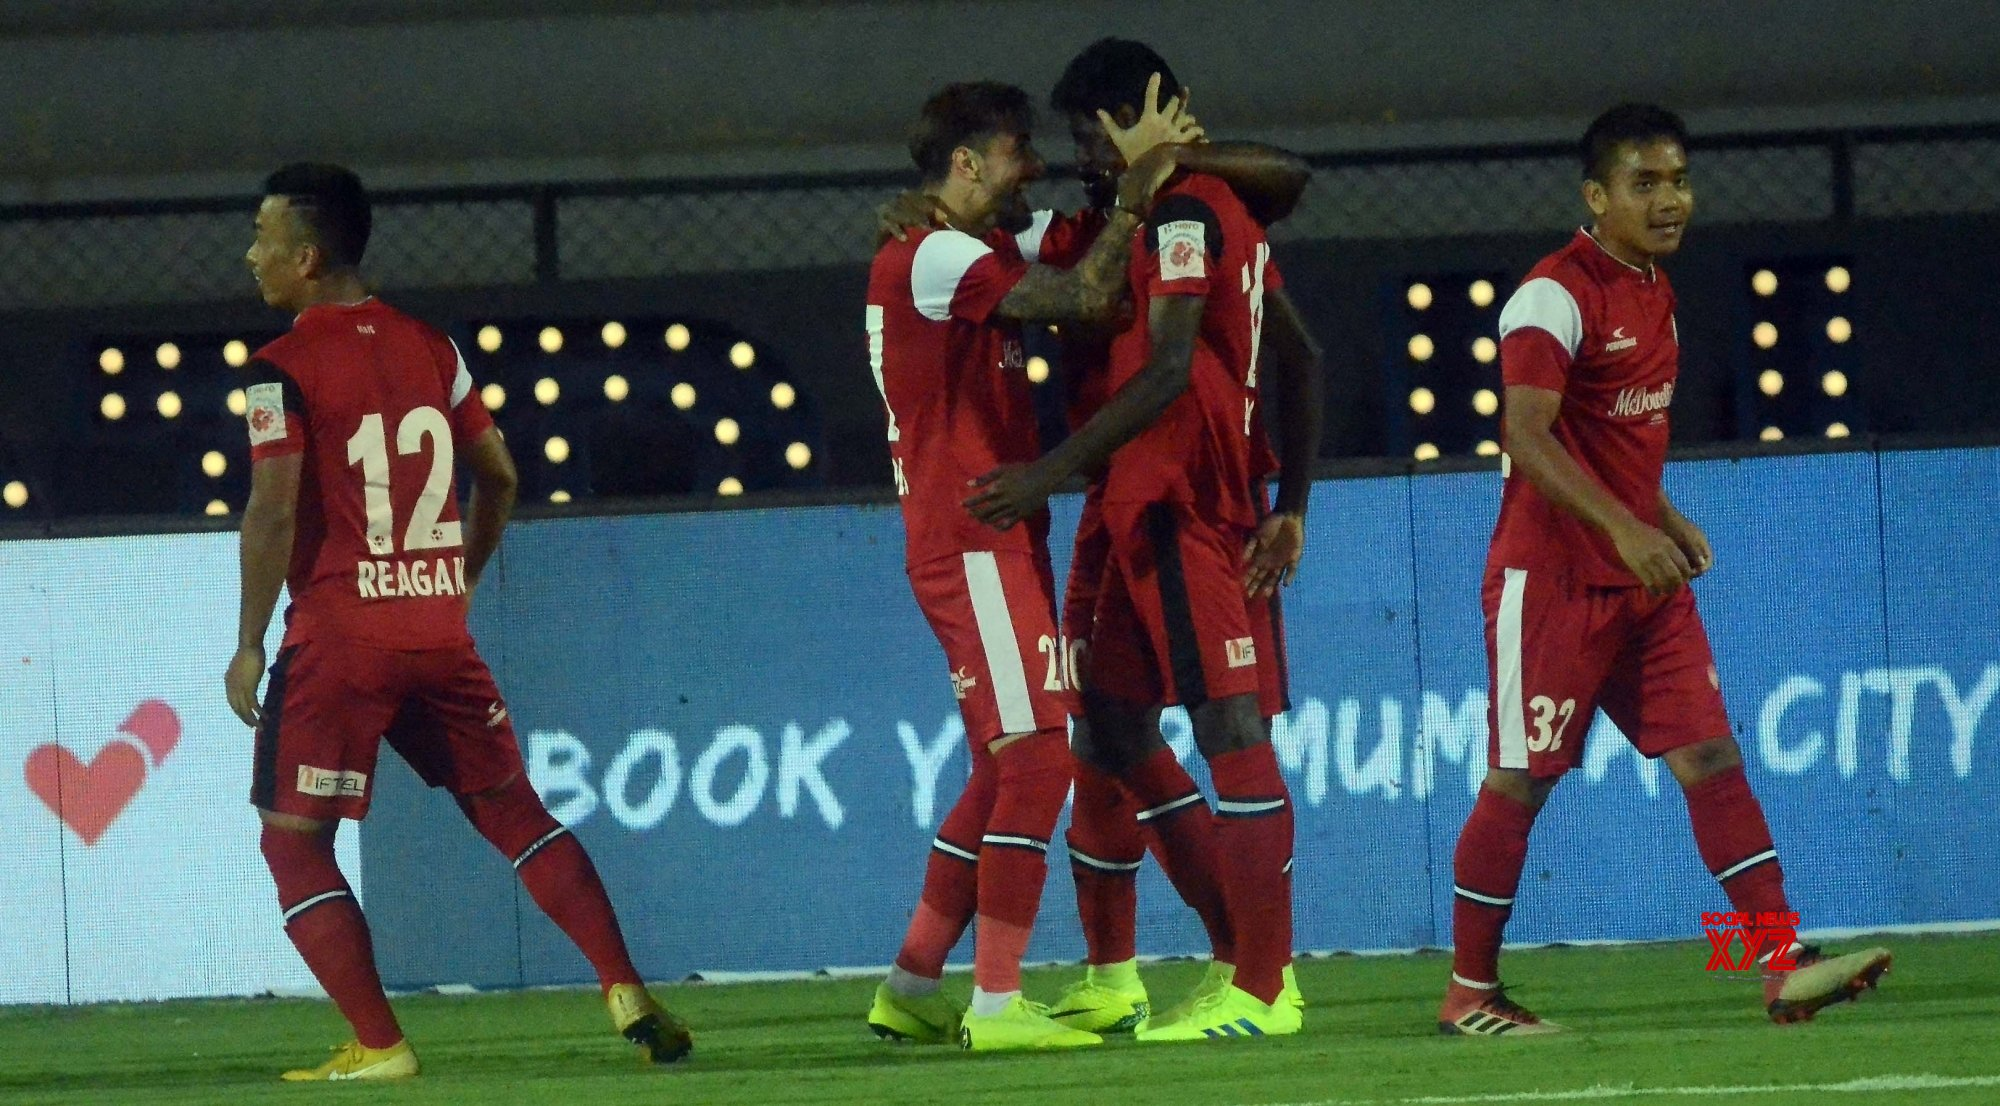 Mumbai: ISL 2018 - 19 - Mumbai City FC Vs NorthEast United FC #Gallery